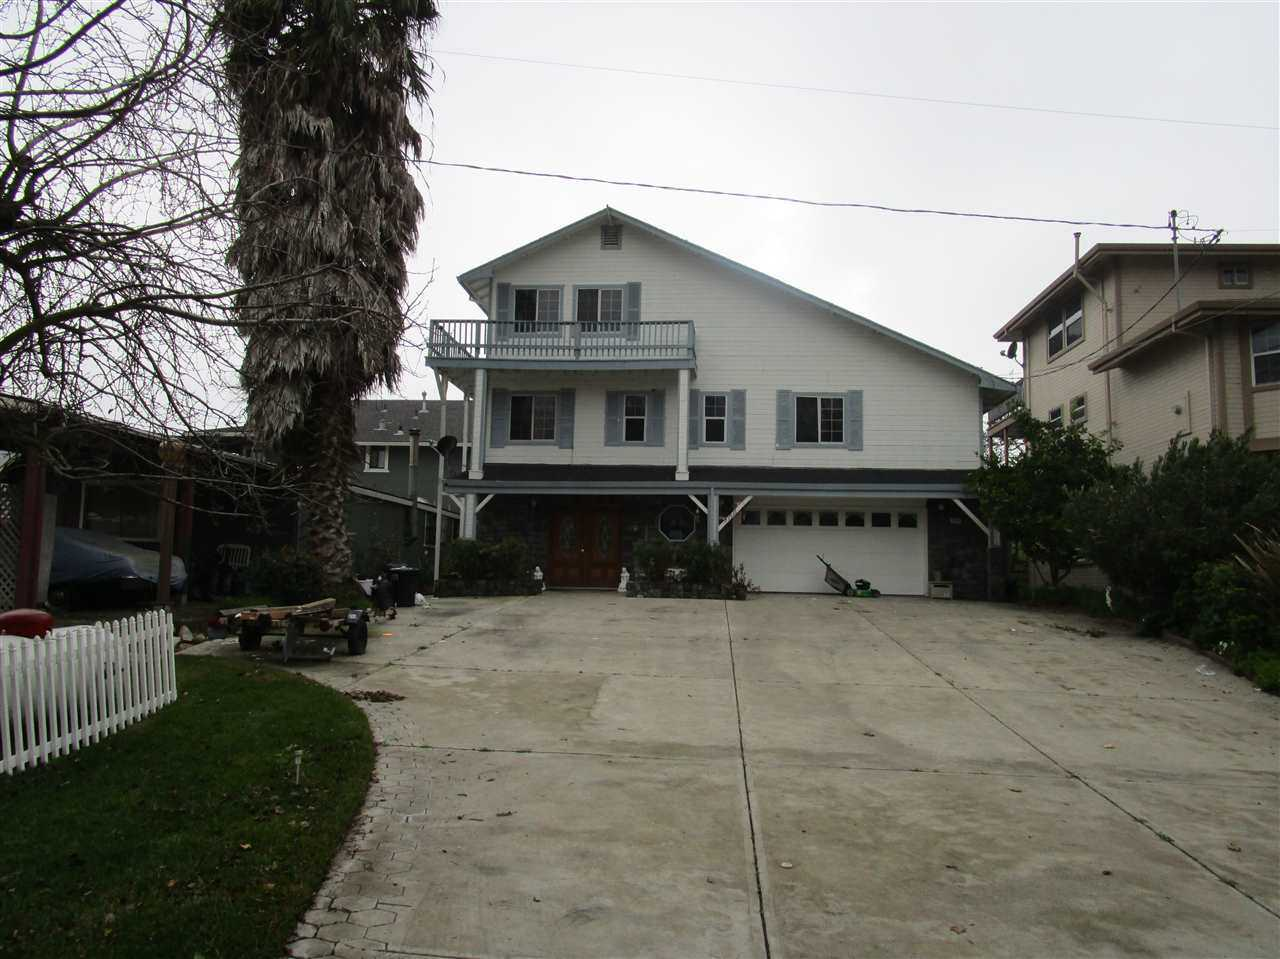 136 north sunset terrace jackson ms - Home For Sale Bethel Island Ca 94511 Paragon Real Estate Group